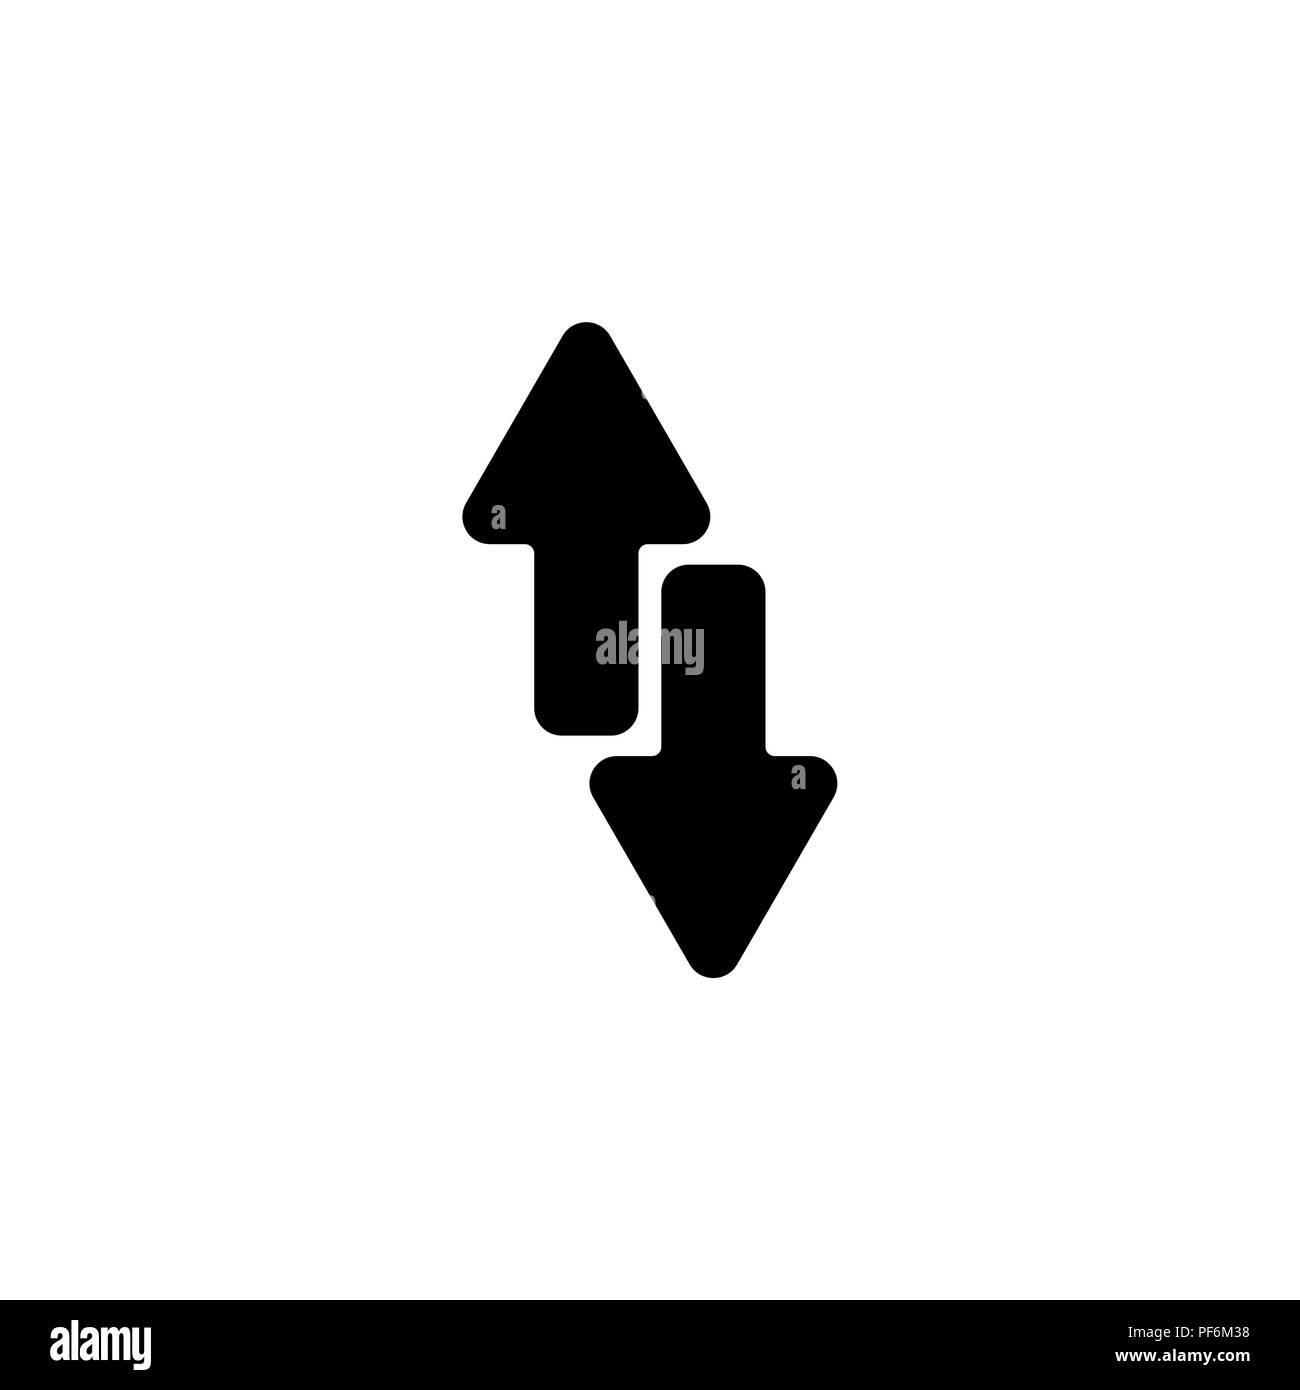 Black arrow pointing upward cut out stock images pictures alamy arrows up down black on white background stock image altavistaventures Gallery